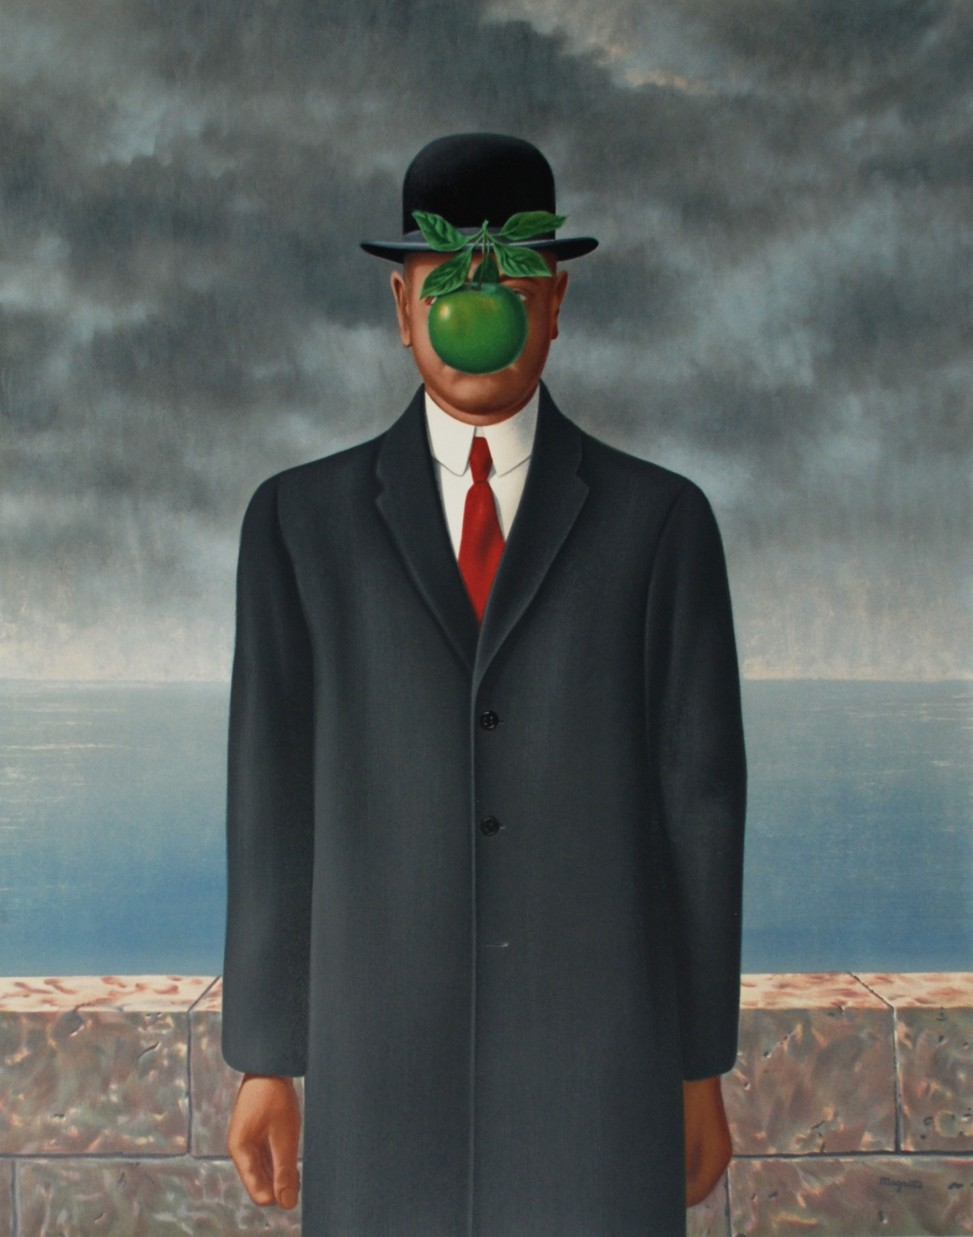 The Son of Man by Rene Magritte